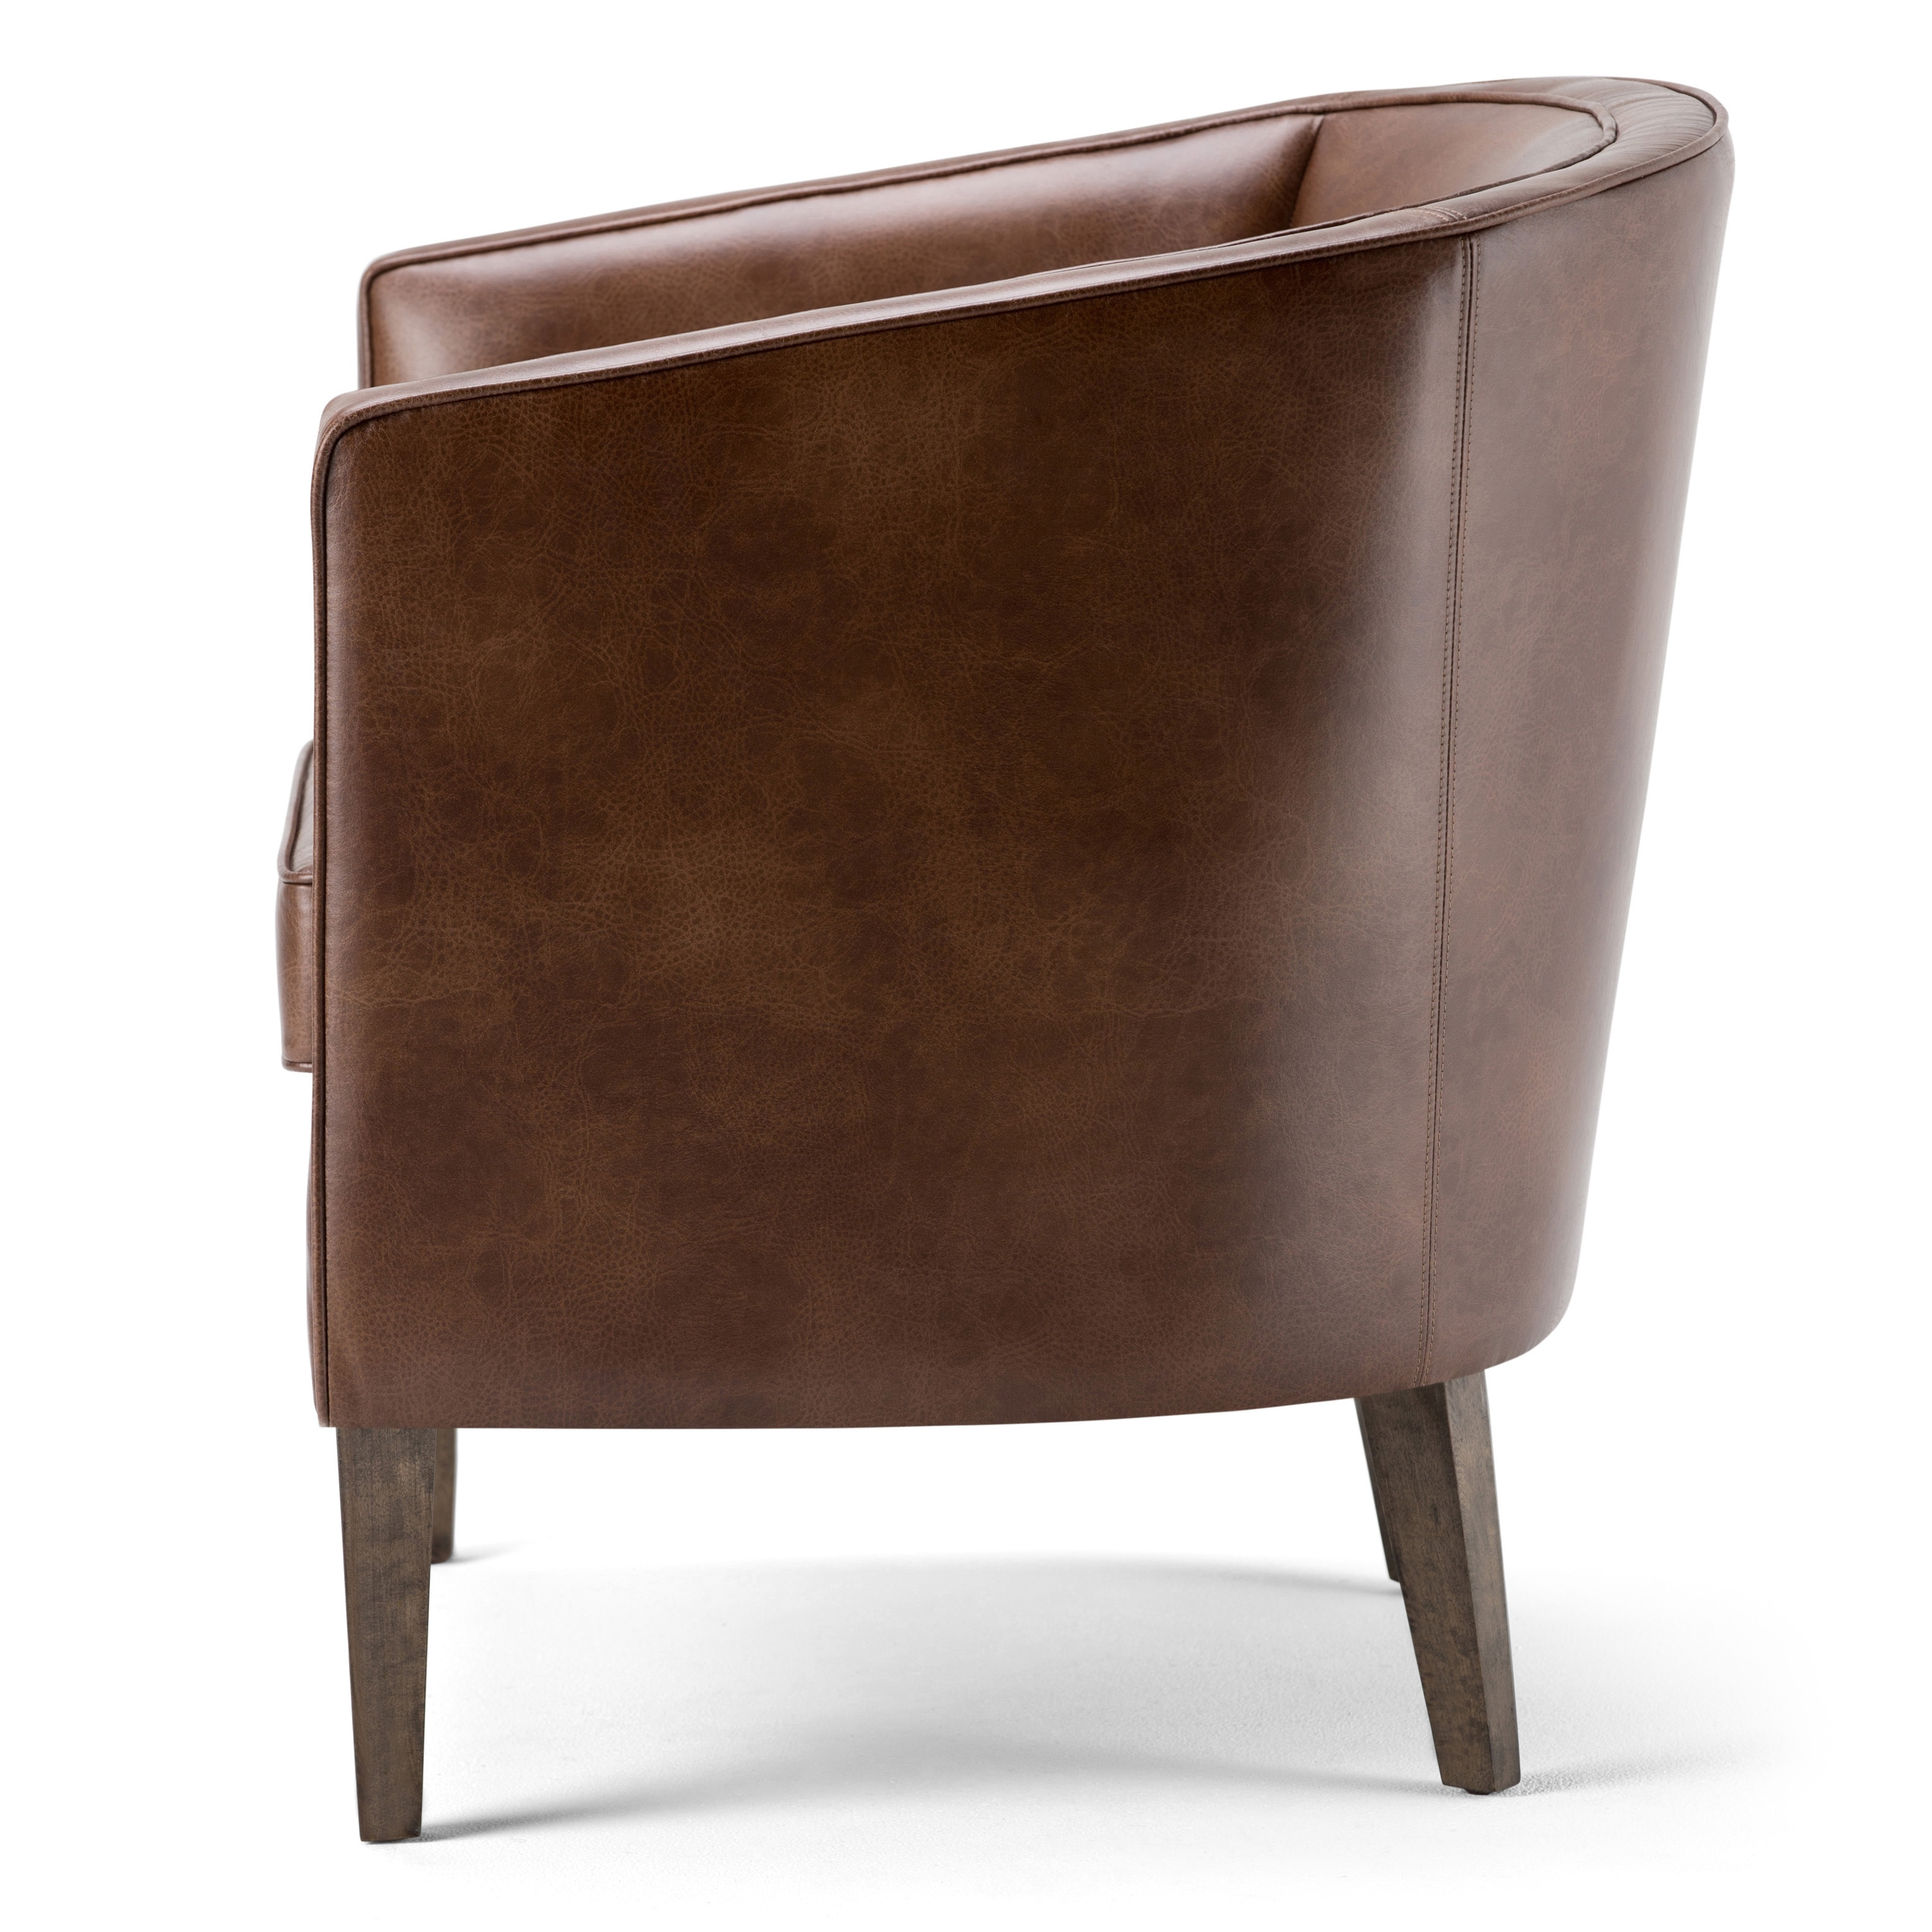 Exceptionnel WYNDENHALL Walker Brown Bonded Leather Tub Chair   Free Shipping Today    Overstock.com   19163339